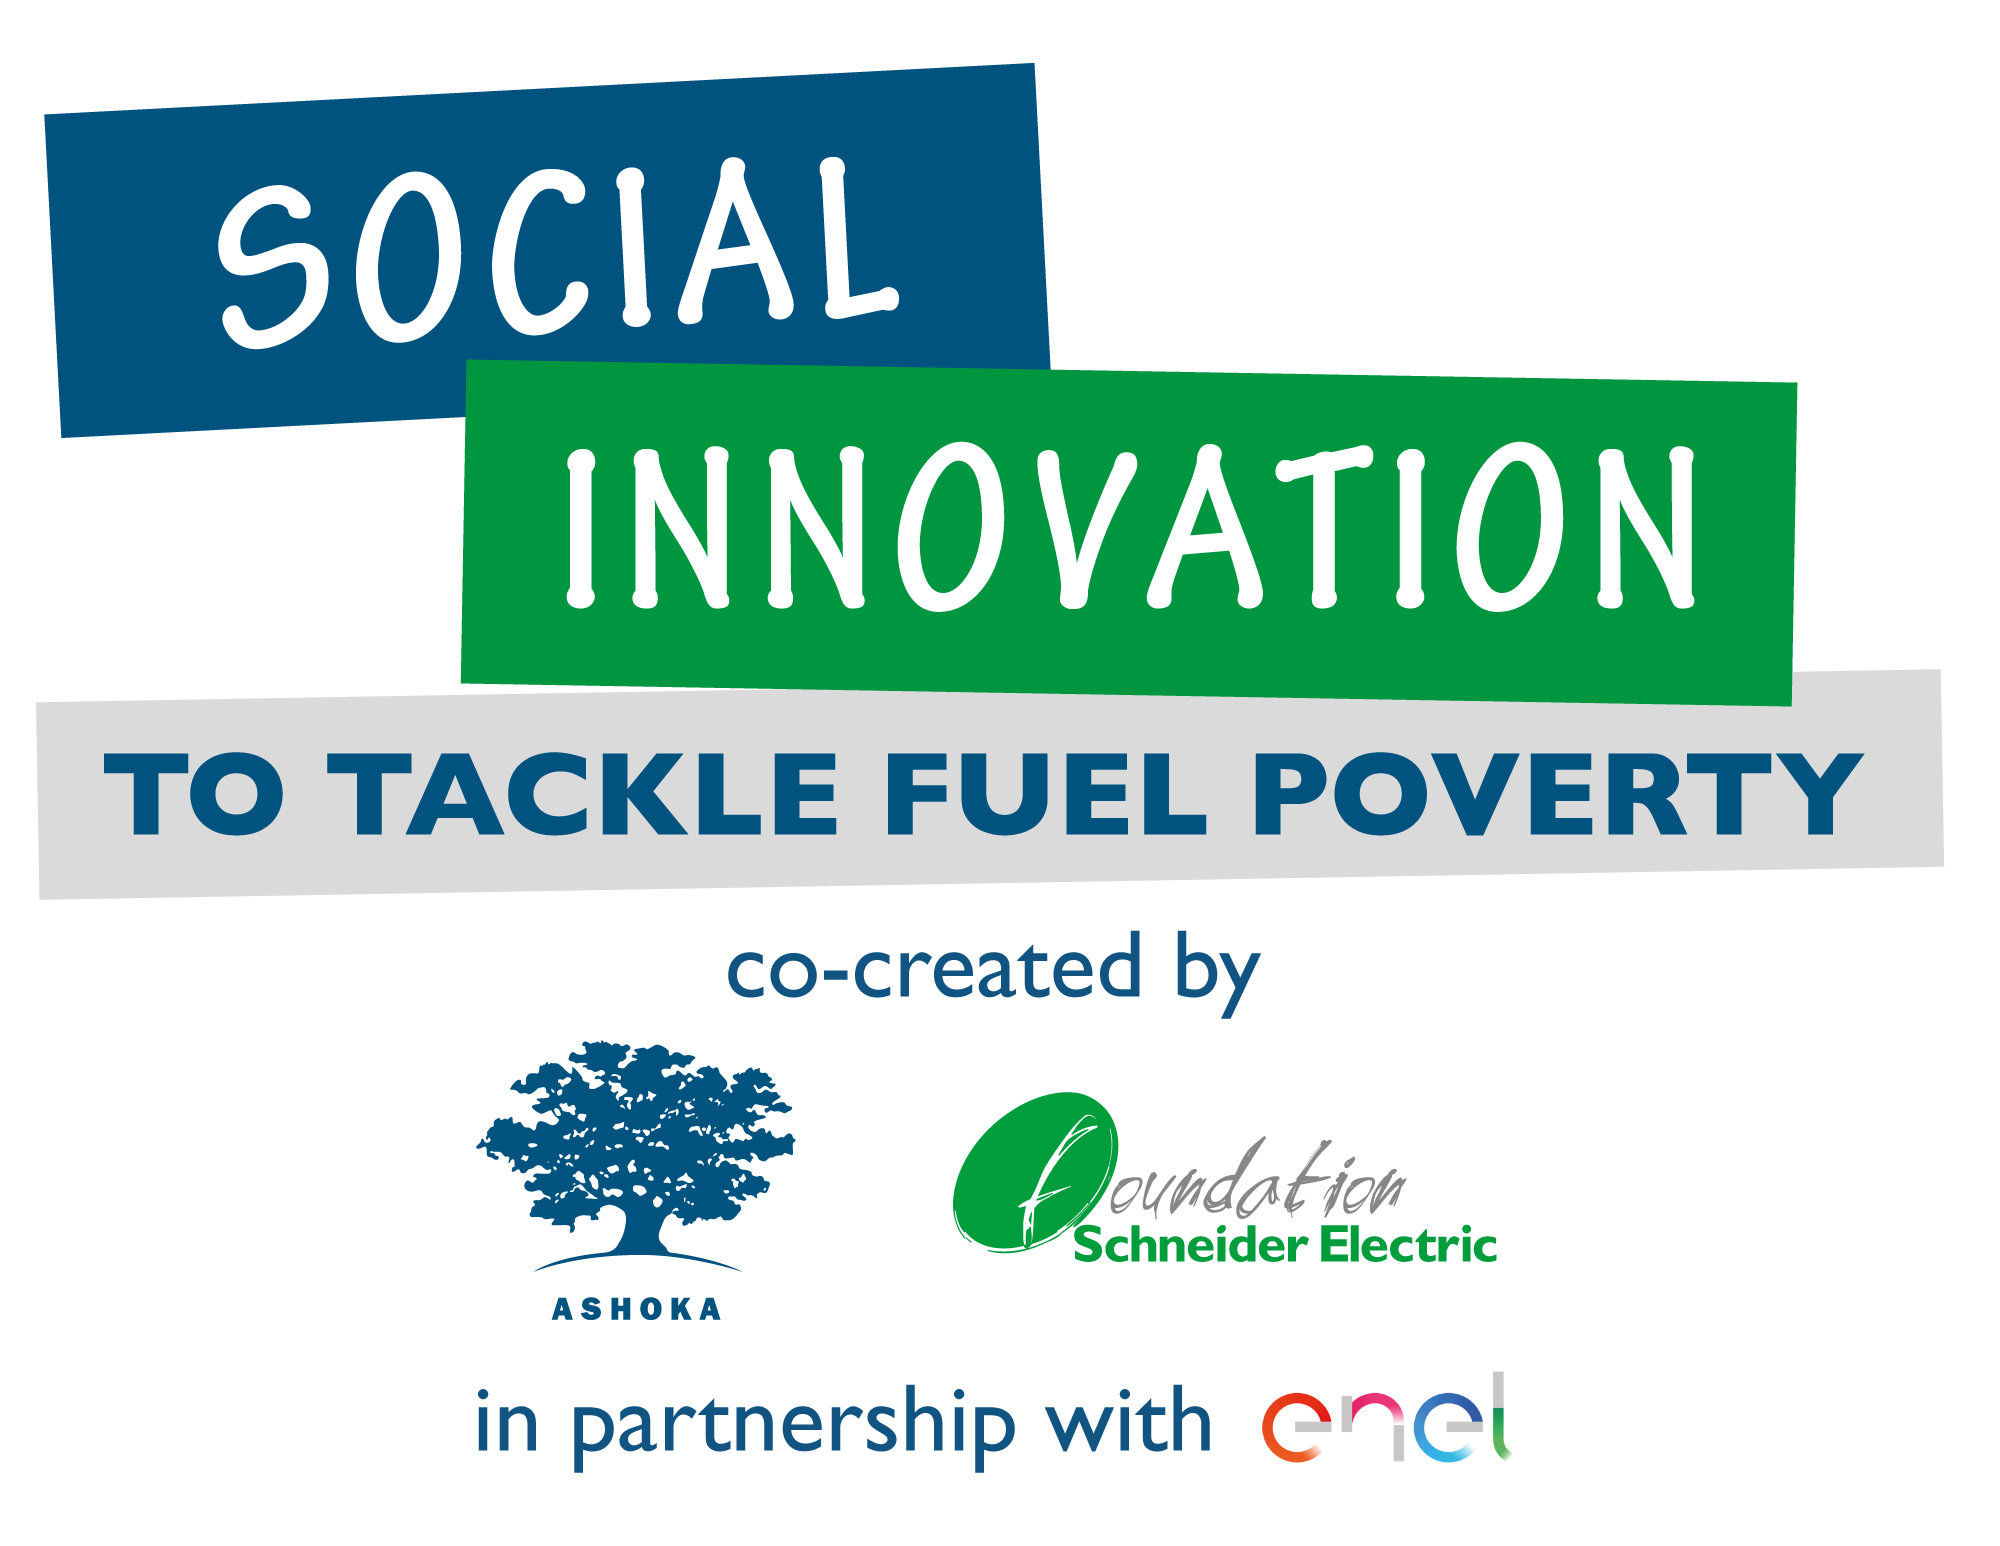 Social Innovation to Tackle Fuel Poverty